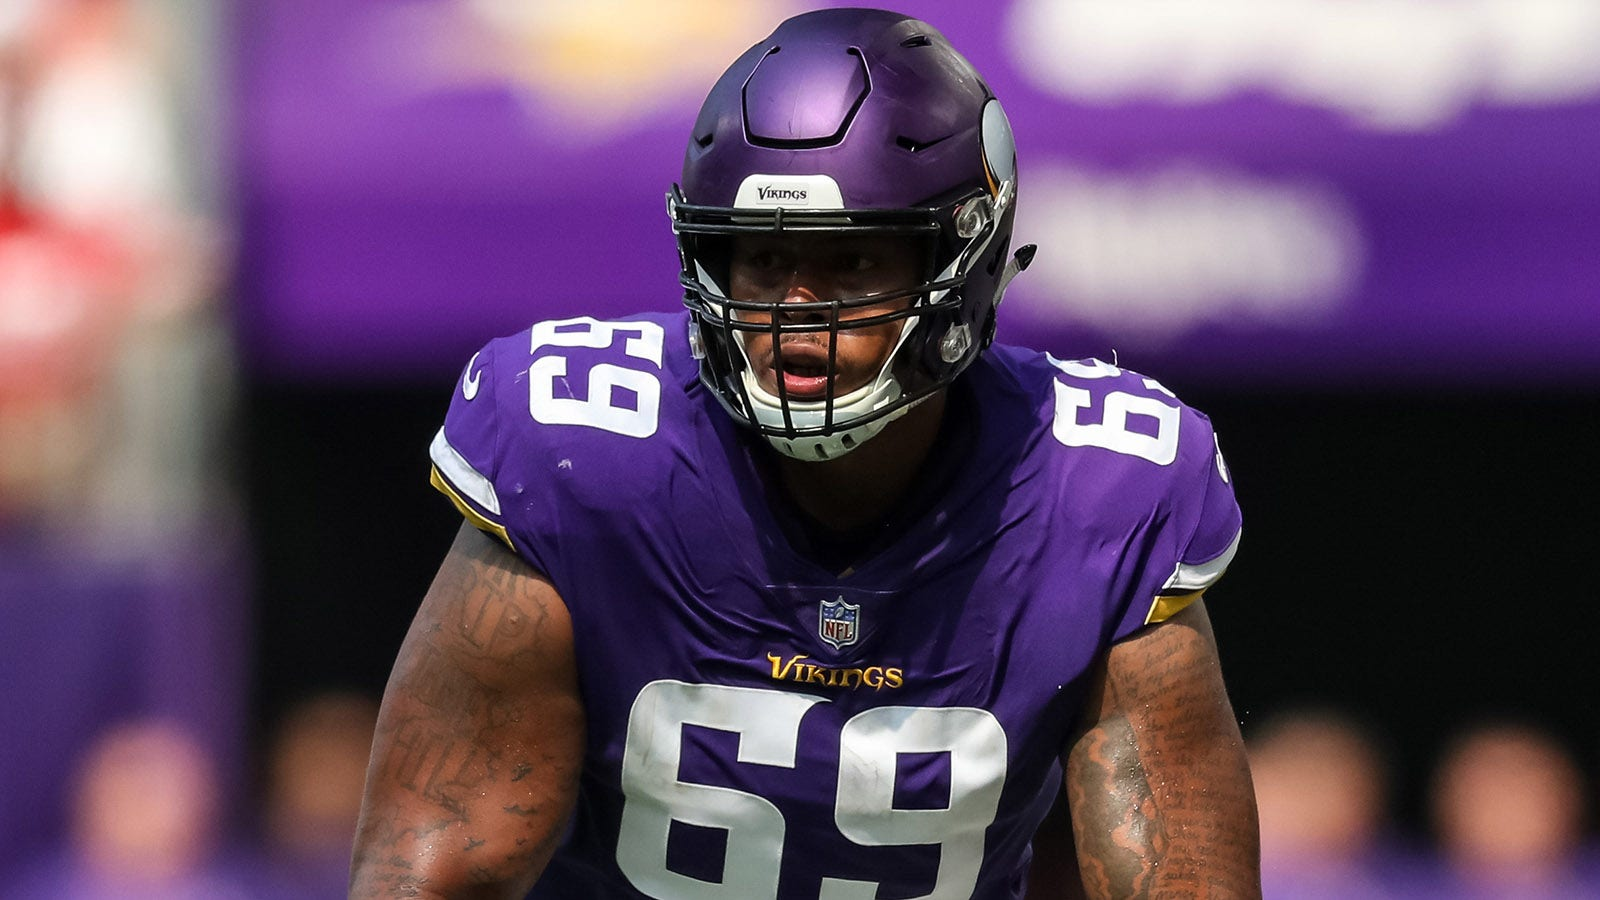 sports shoes 2d5ef cb893 Vikings Snap Counts: Rashod Hill fills in with O-line ...